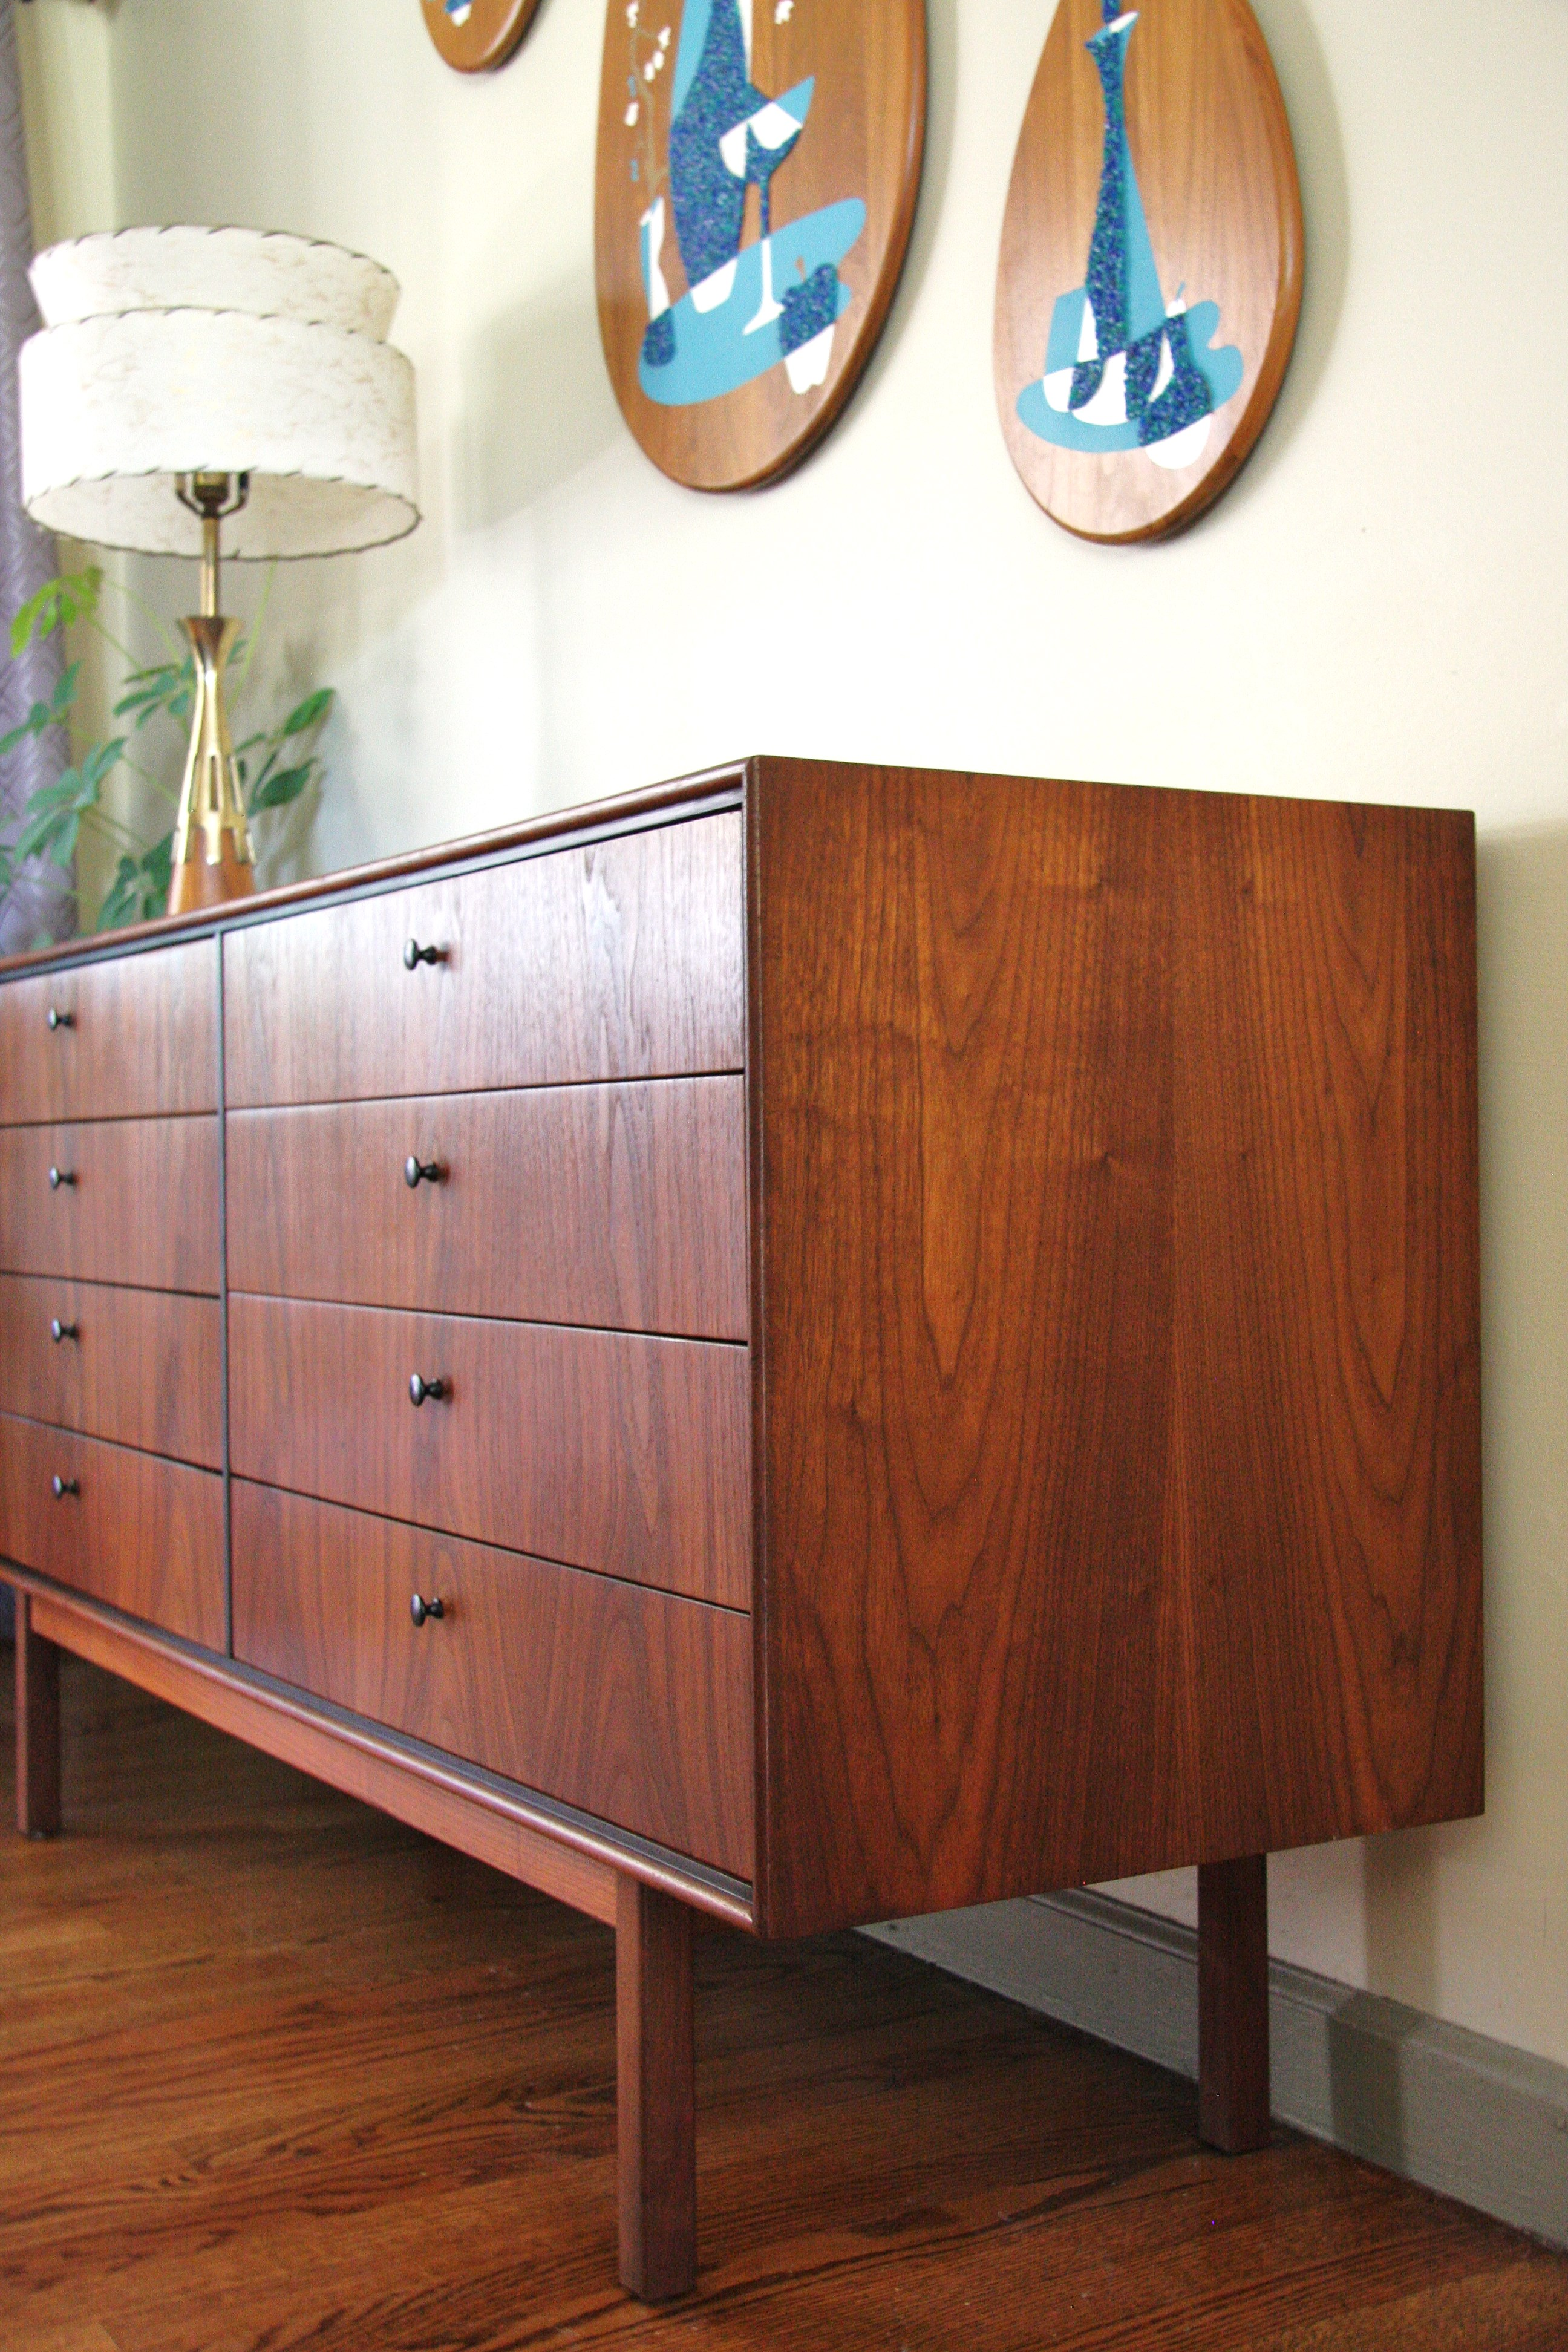 Rare Double Dresser by Jack Cartwright for Founders_8